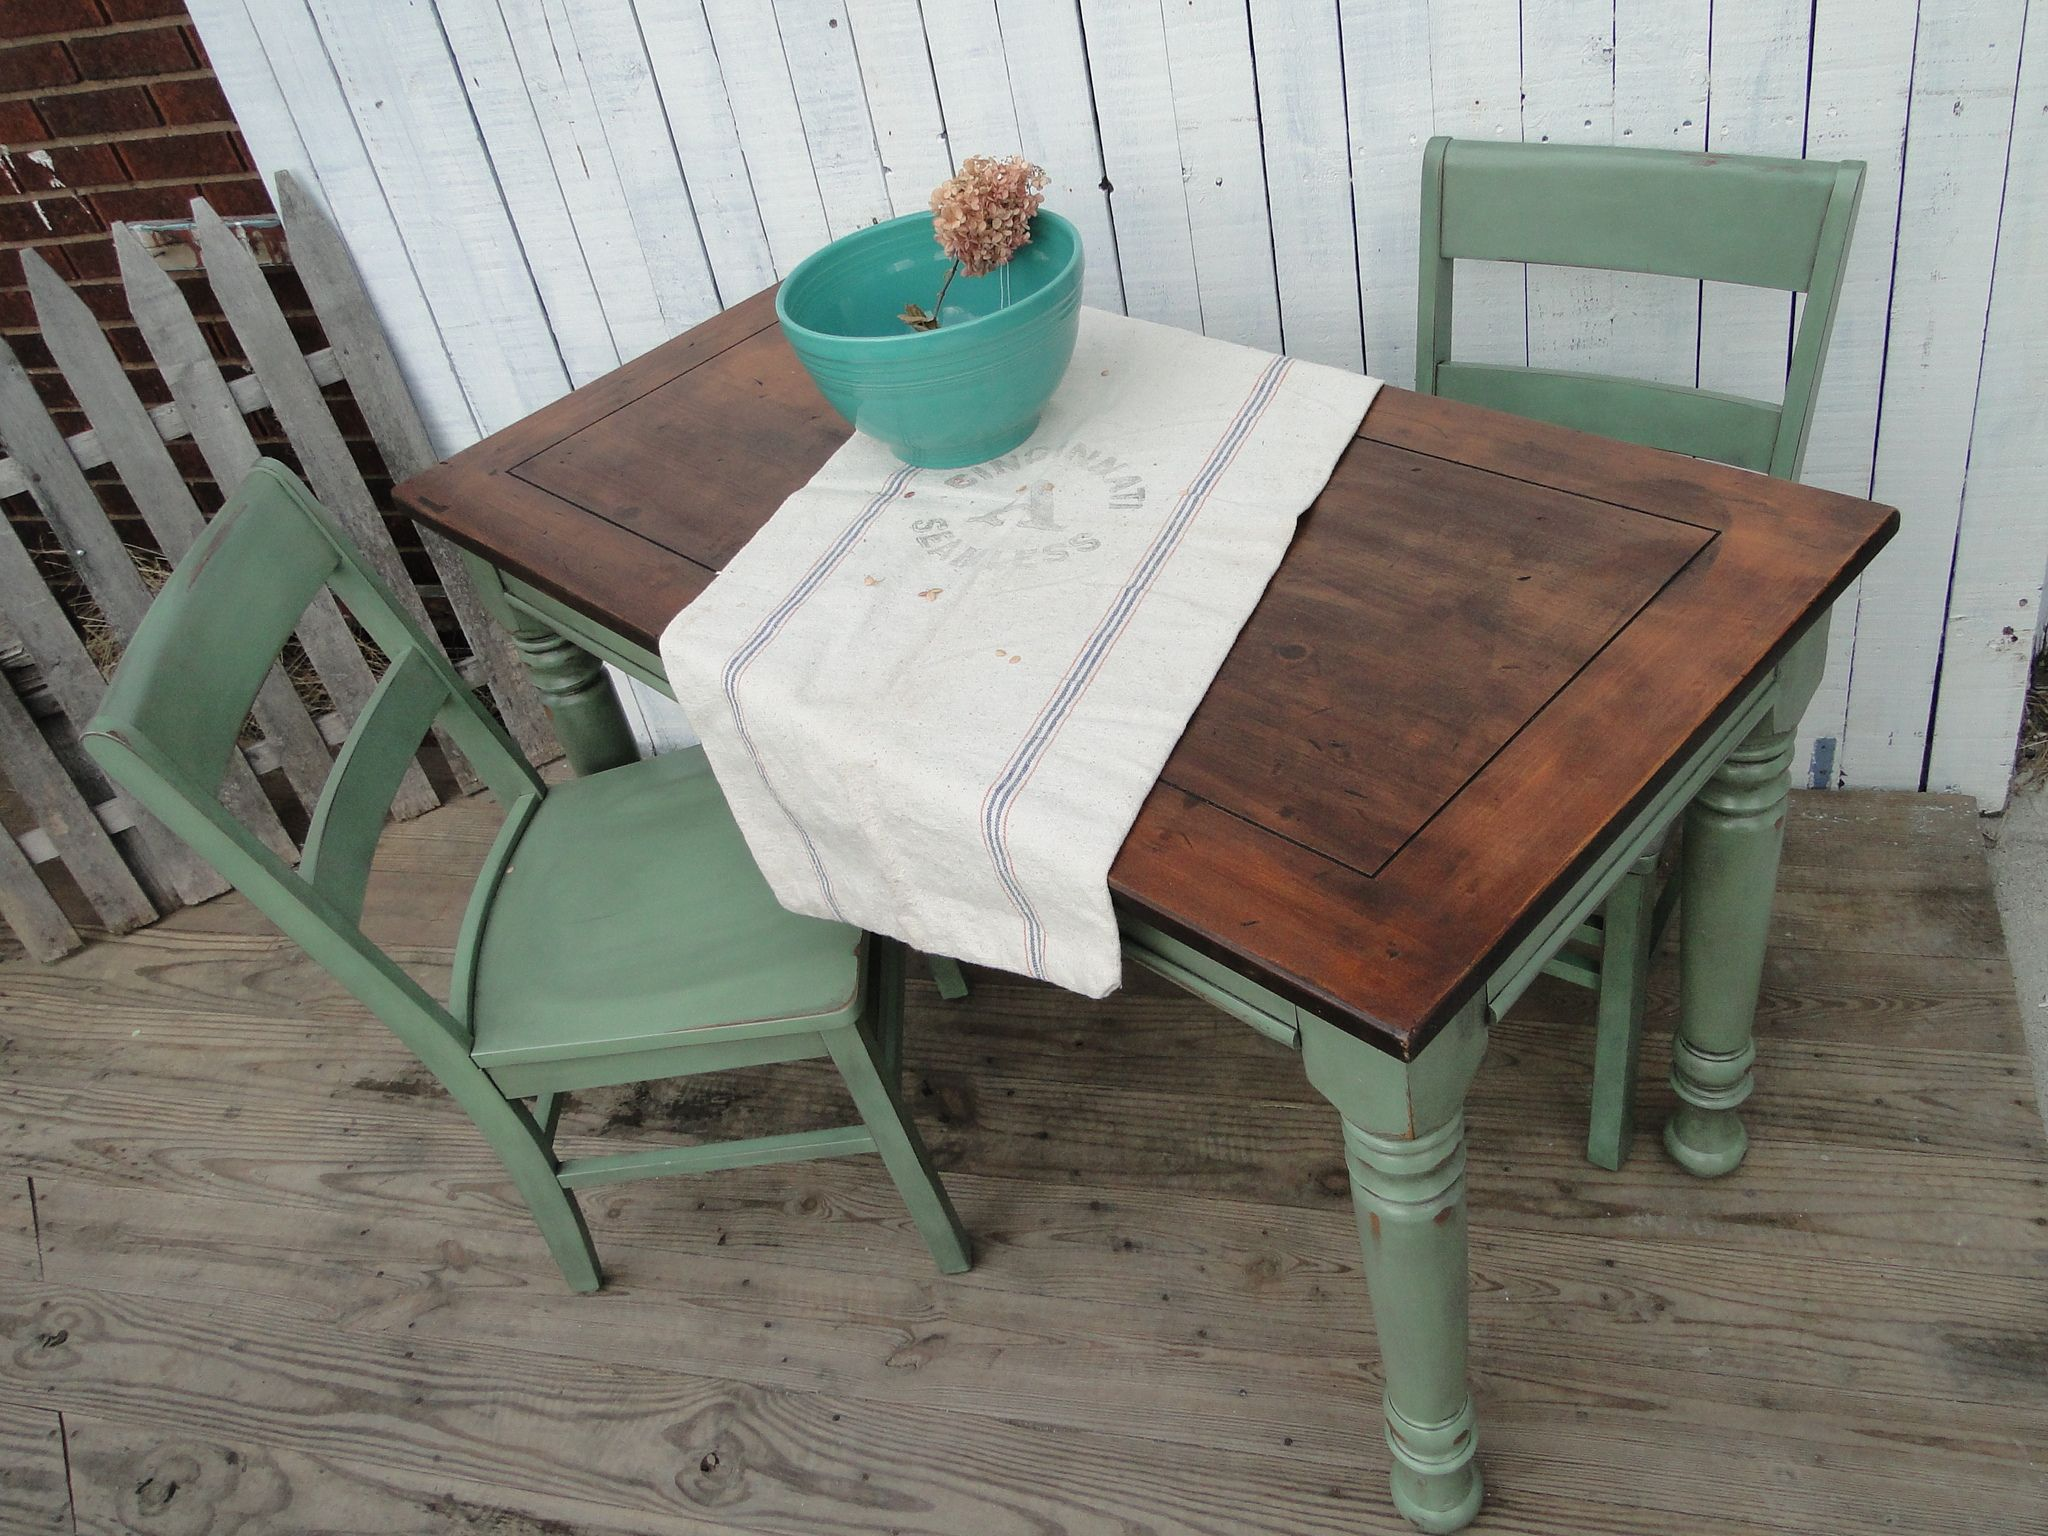 Table painted farmhouse table and chairs - Mini Farmhouse Table And Chairs Cool Light Green And Medium Stained Top Modern